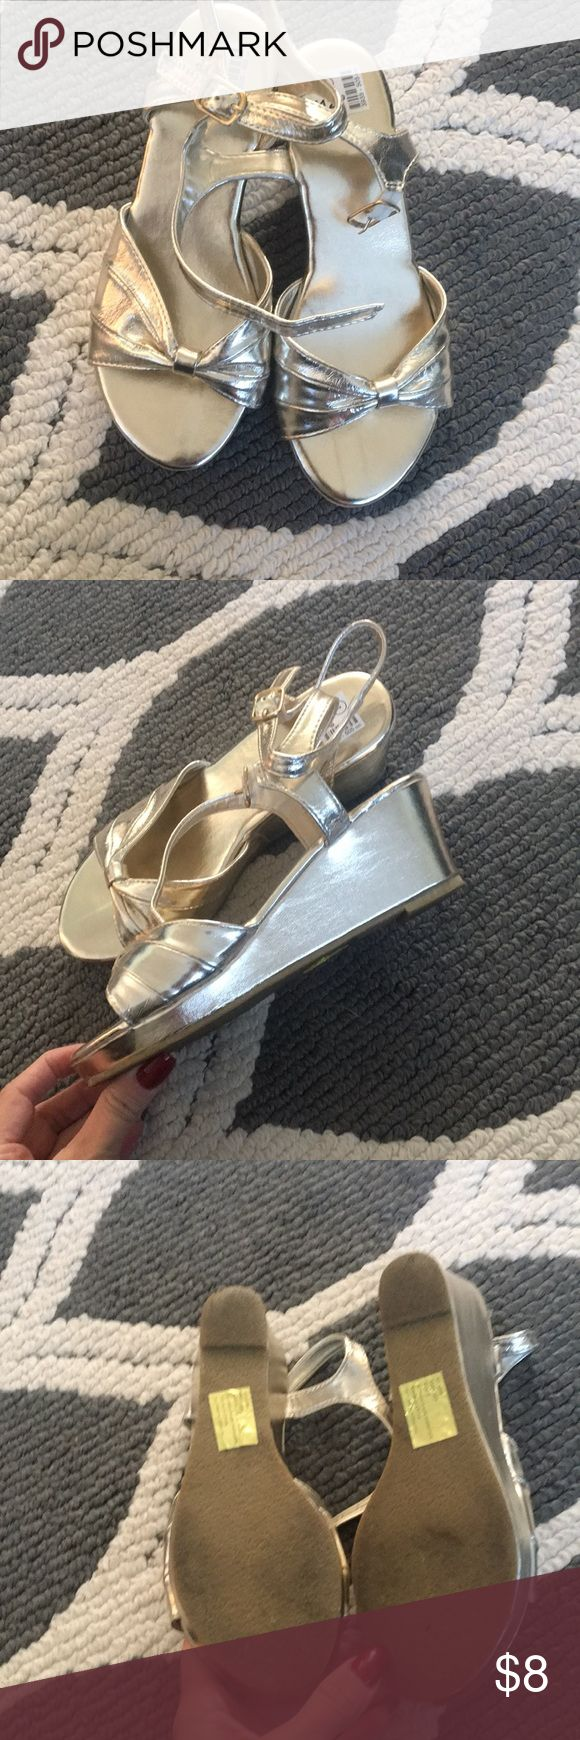 ❤️gold wedge shoes ❤️ Beautiful gold wedge heels with Bow on the front Bought in Puerto Rico Shoes Dress Shoes